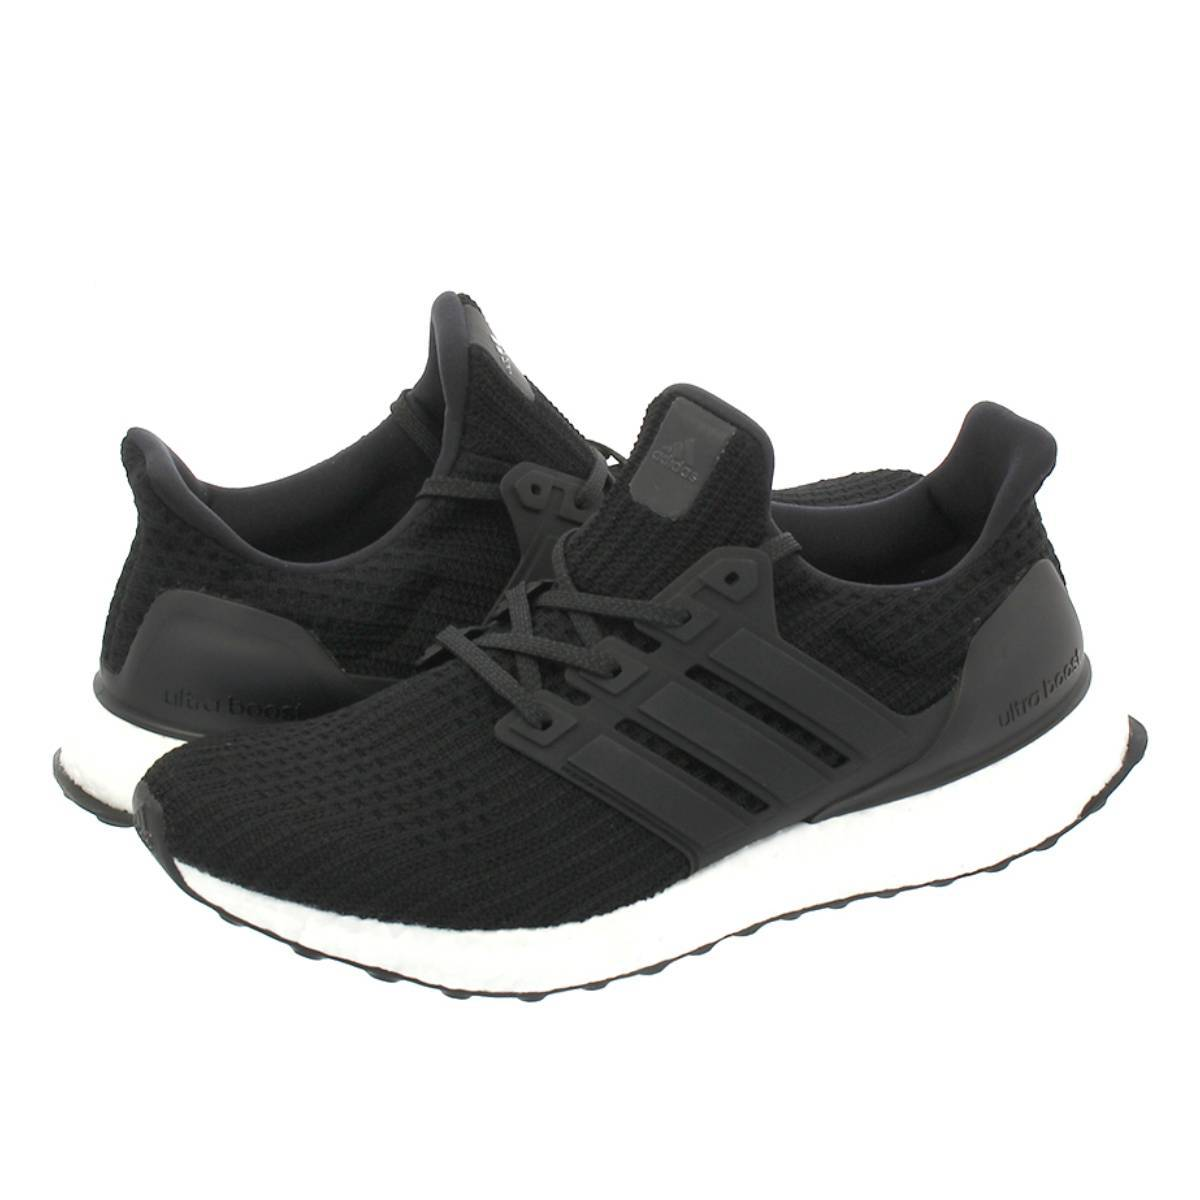 uk availability ba883 8ee9c adidas ULTRA BOOST Adidas ultra boost CORE BLACK/CORE BLACK/CORE BLACK